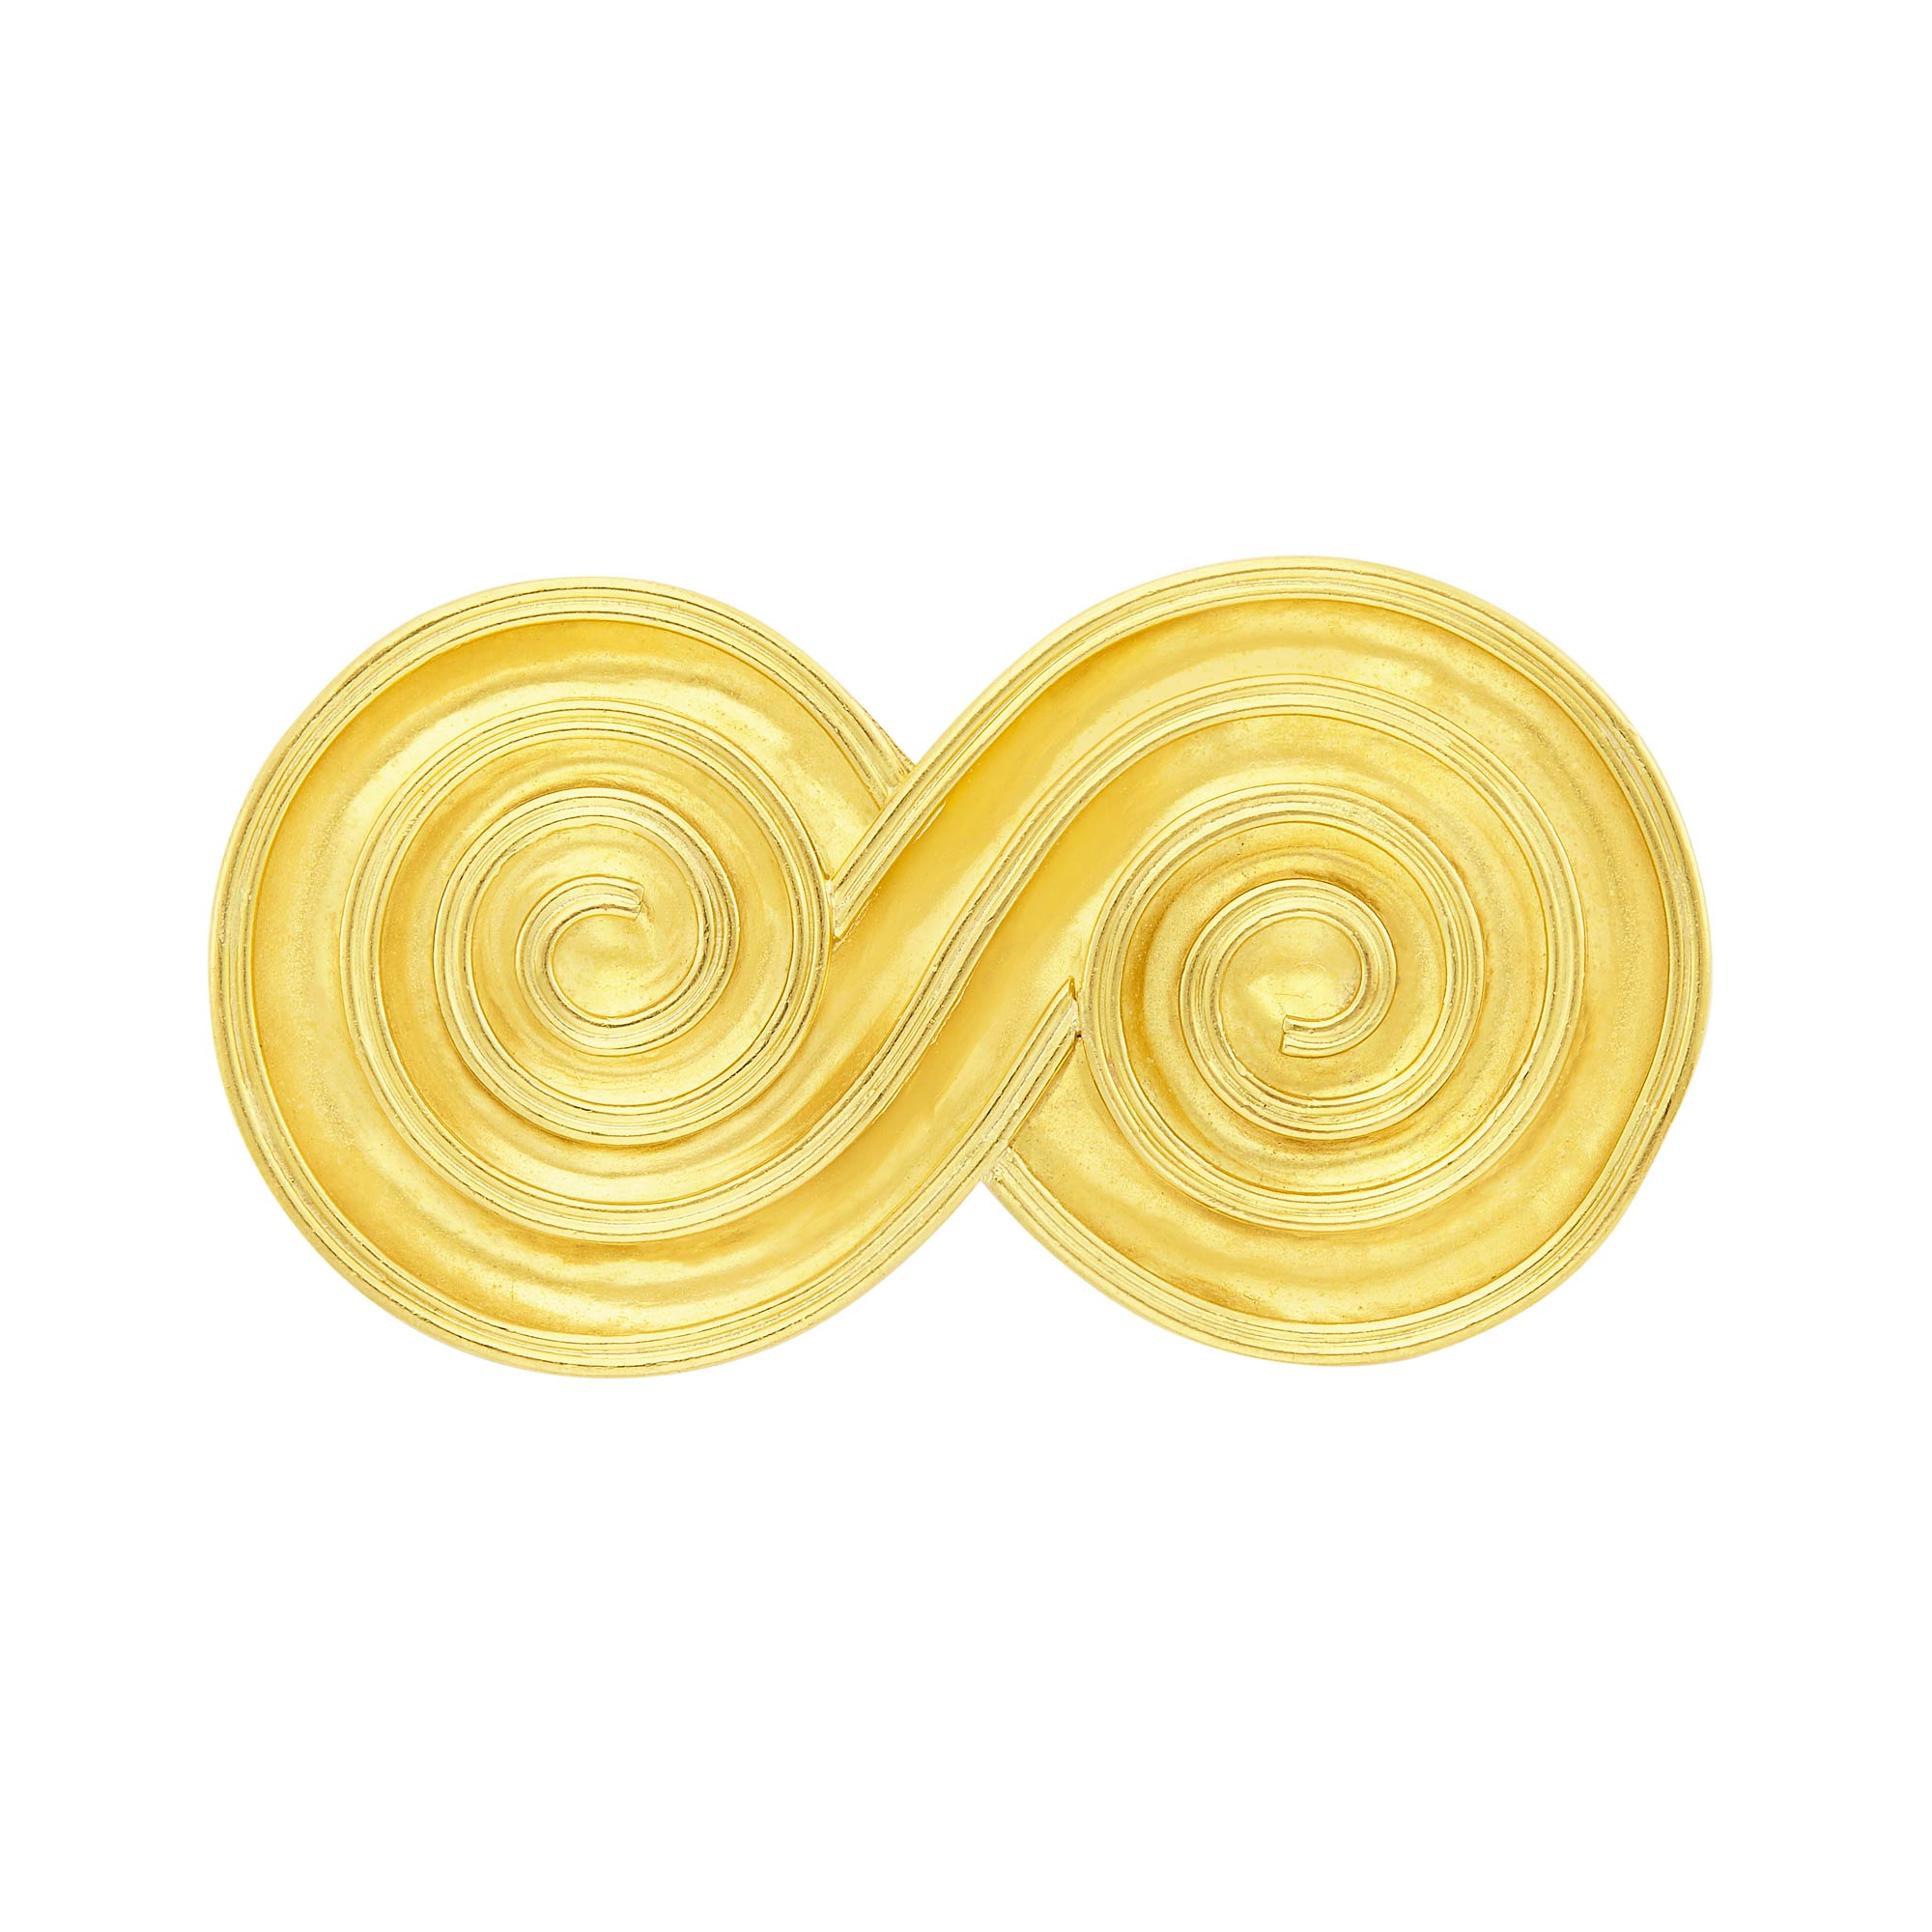 Lot image - Gold Spiral Brooch, Ilias Lalaounis